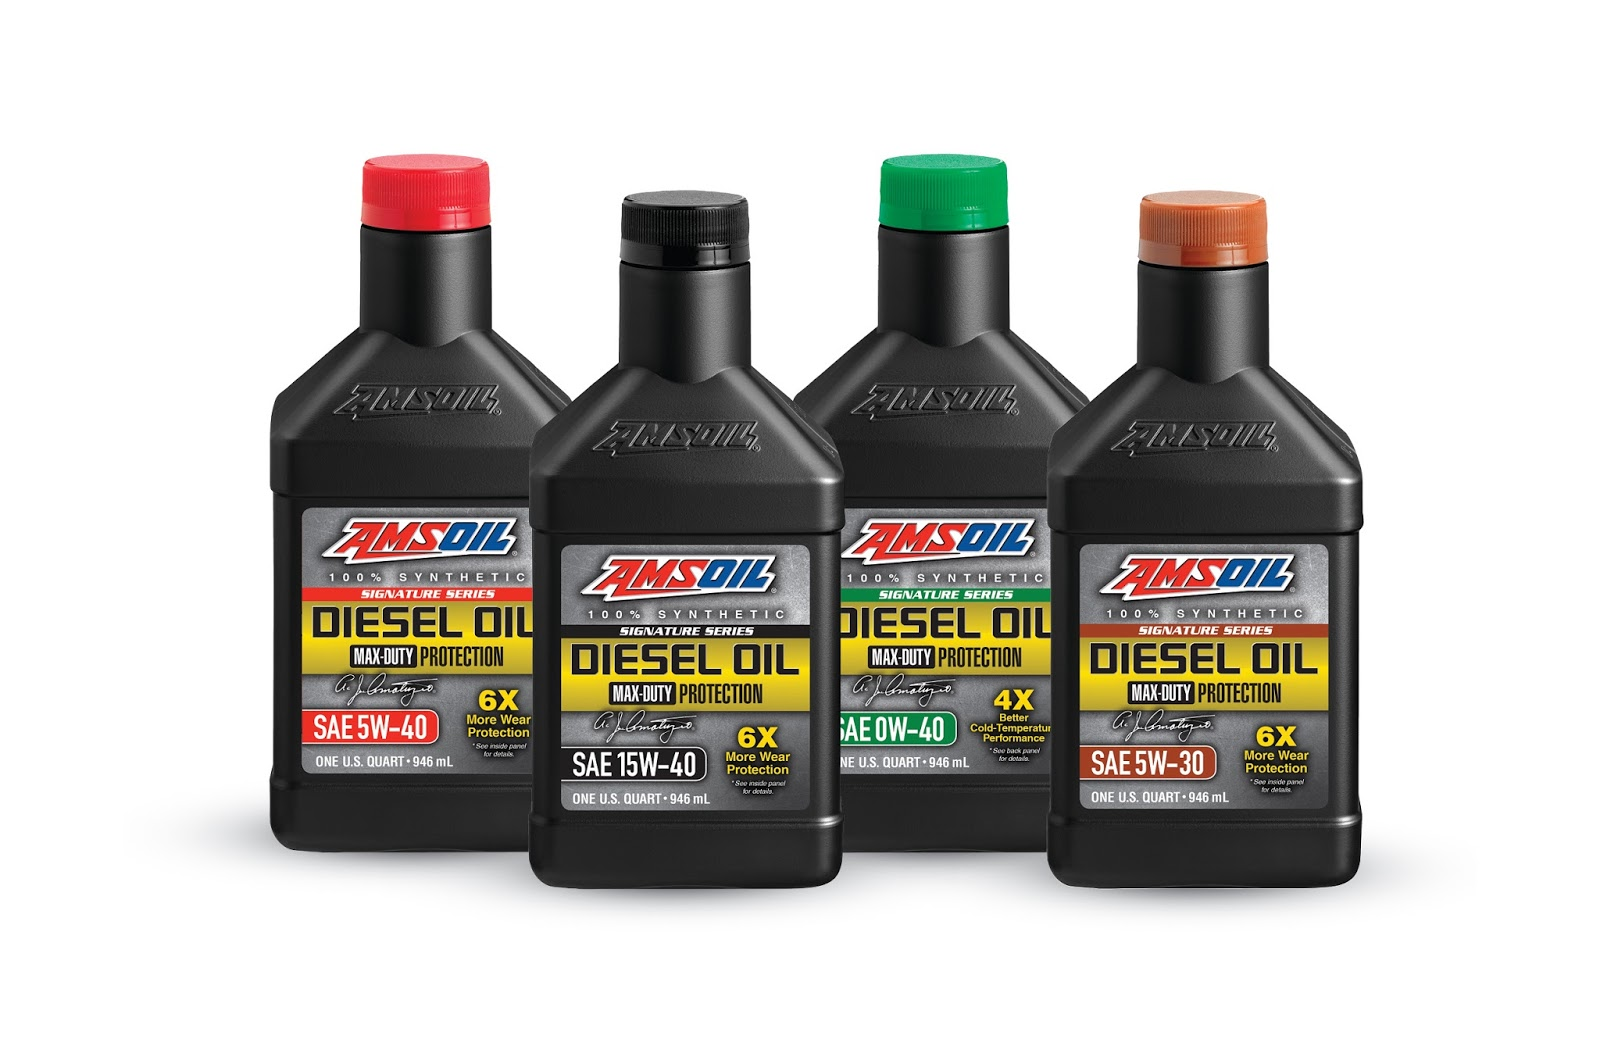 Amsoil diesel oil change recommendations for Amsoil signature series synthetic motor oil